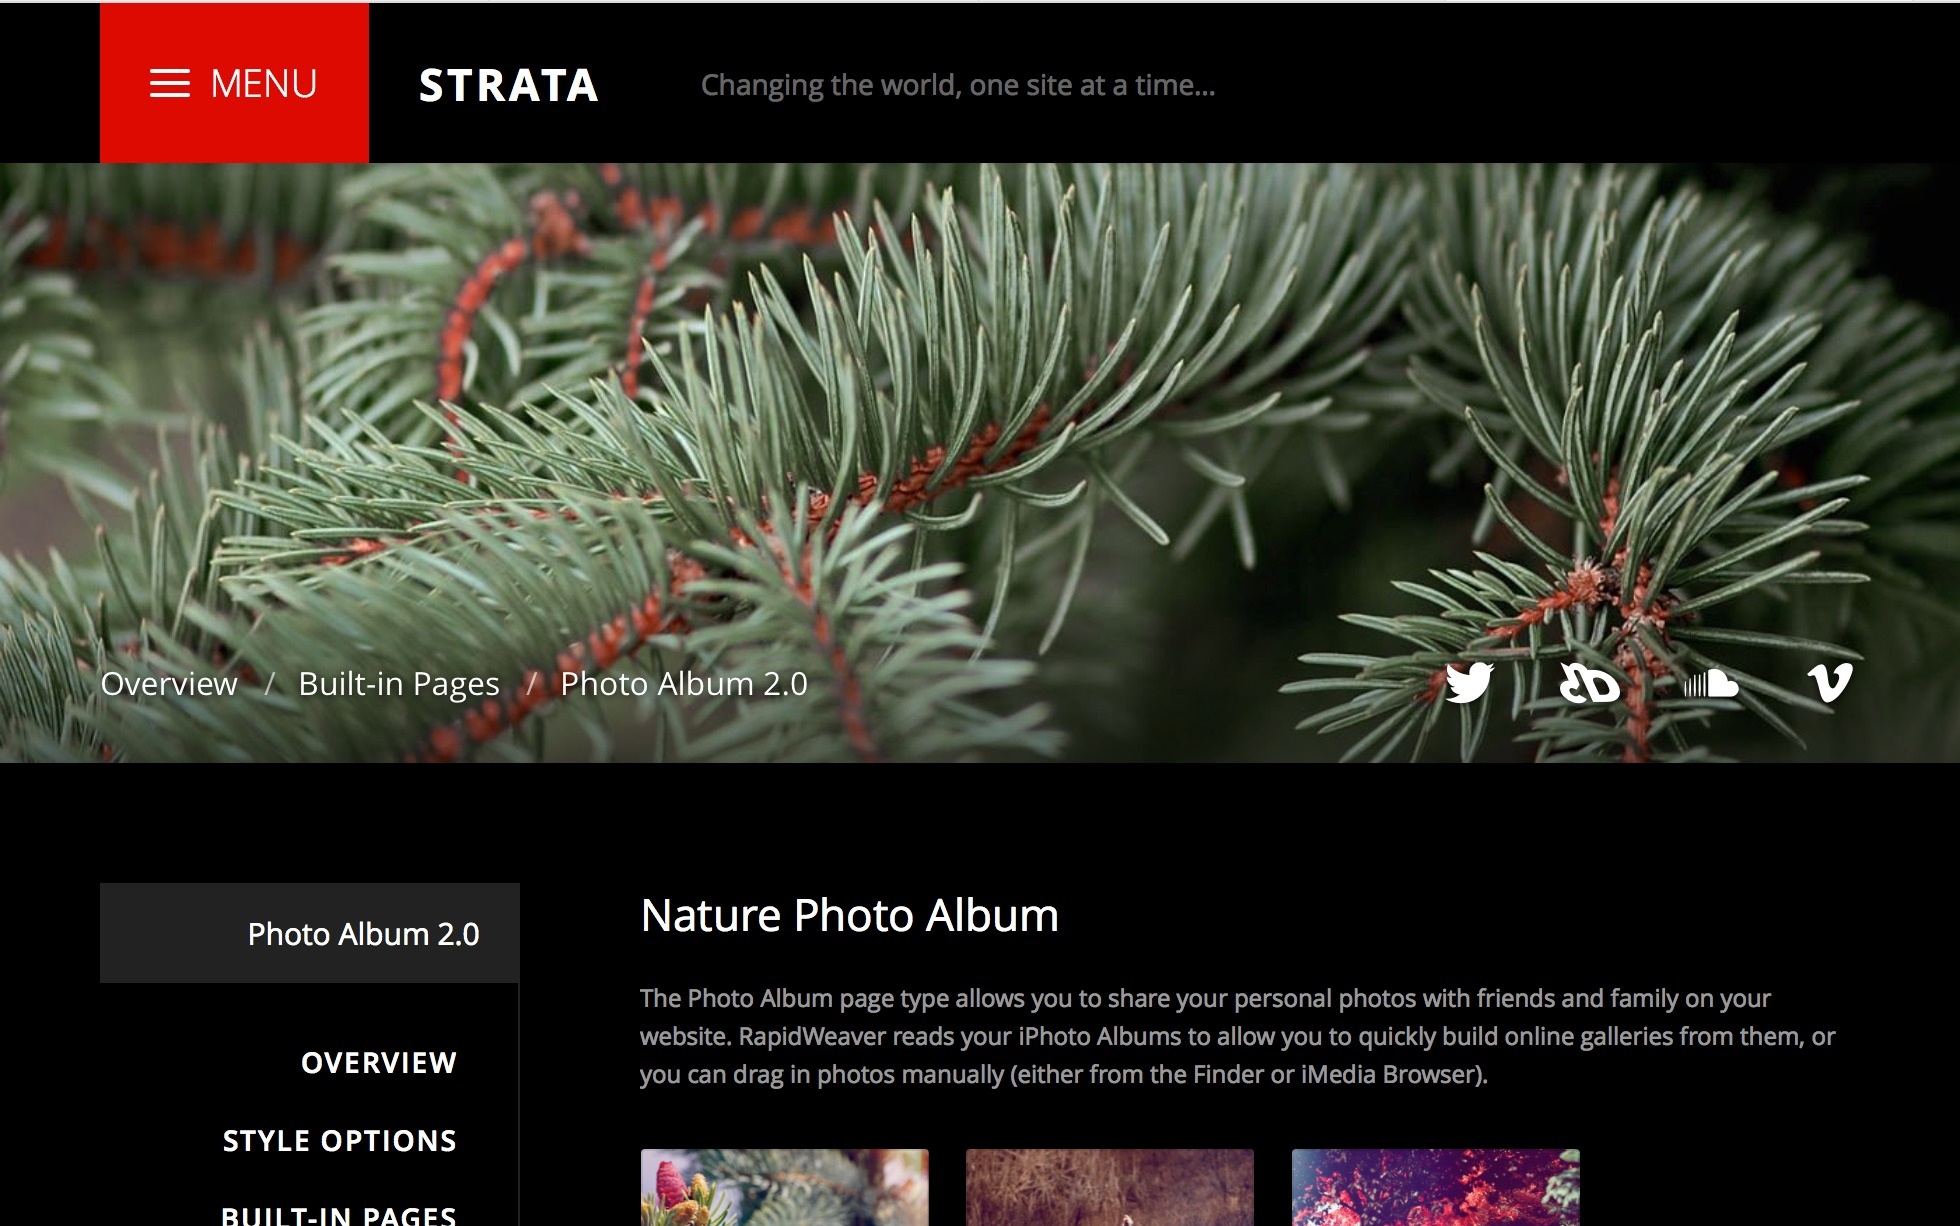 Screenshot 2 for Strata